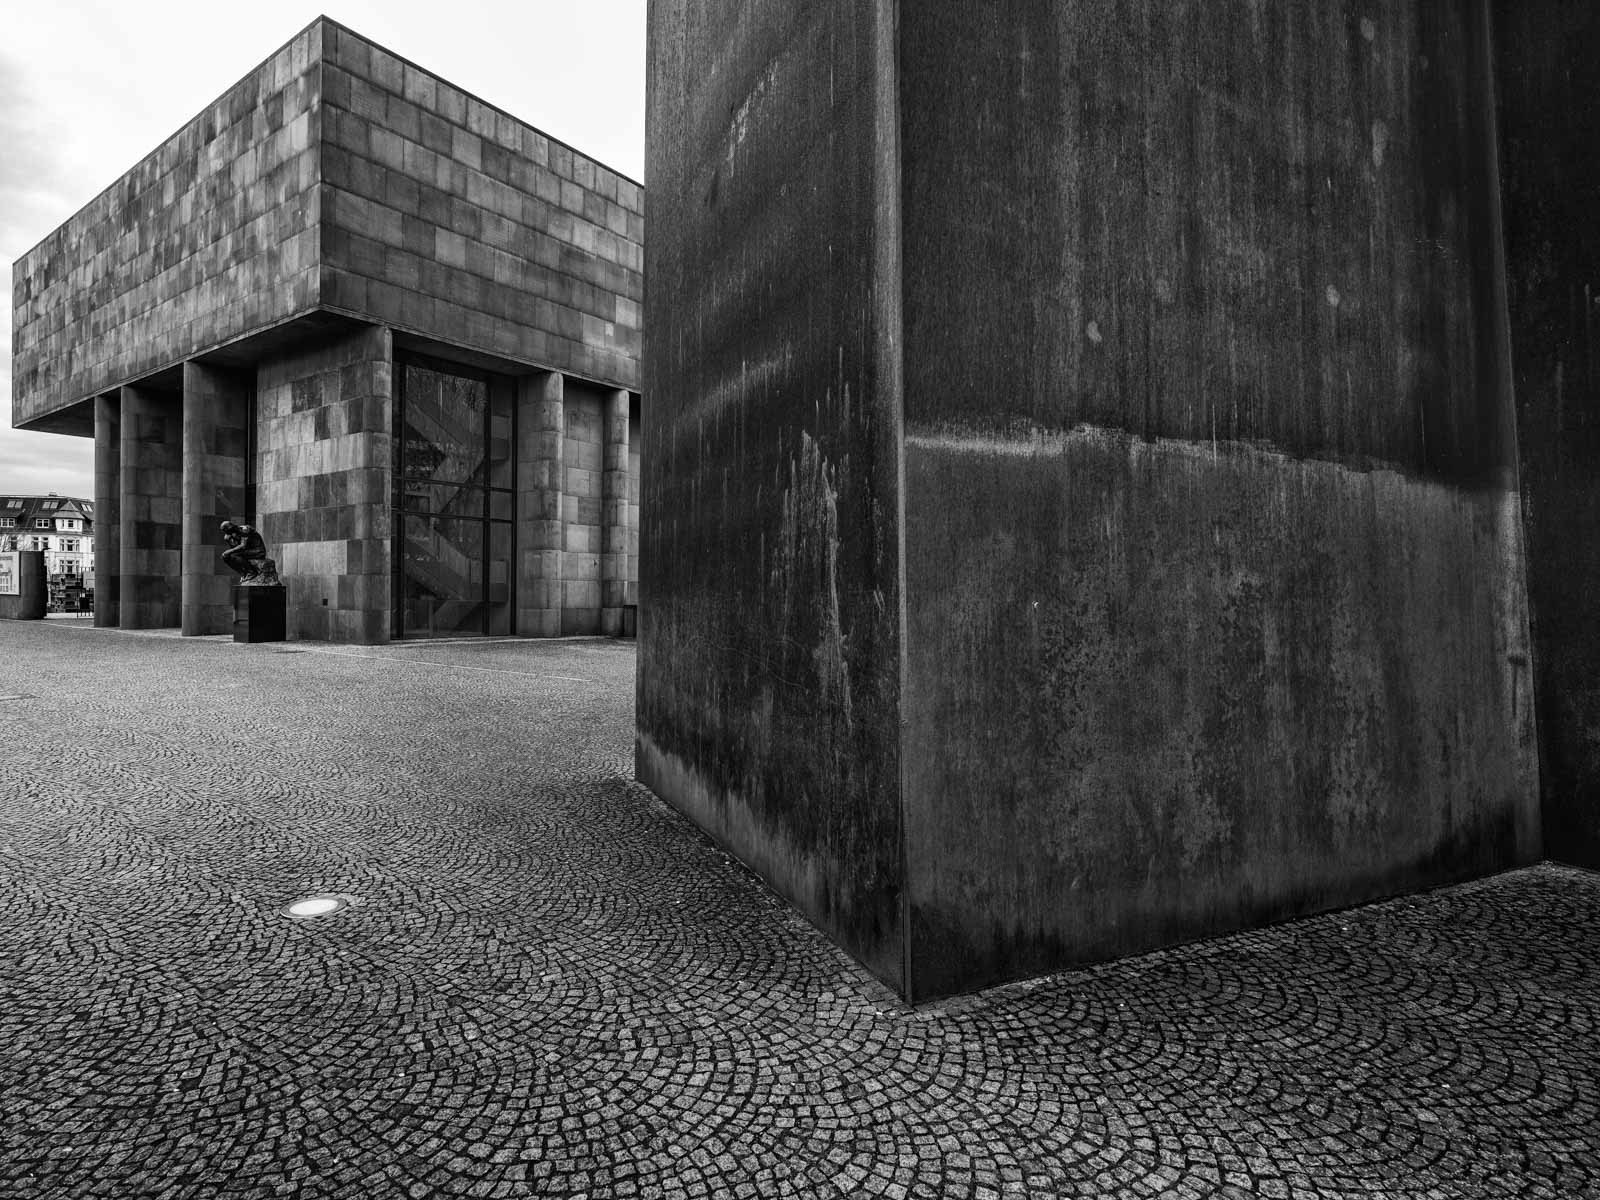 Sculpture 'Axis' by Richard Serra in front of the Kunsthalle Bielefeld (Germany).